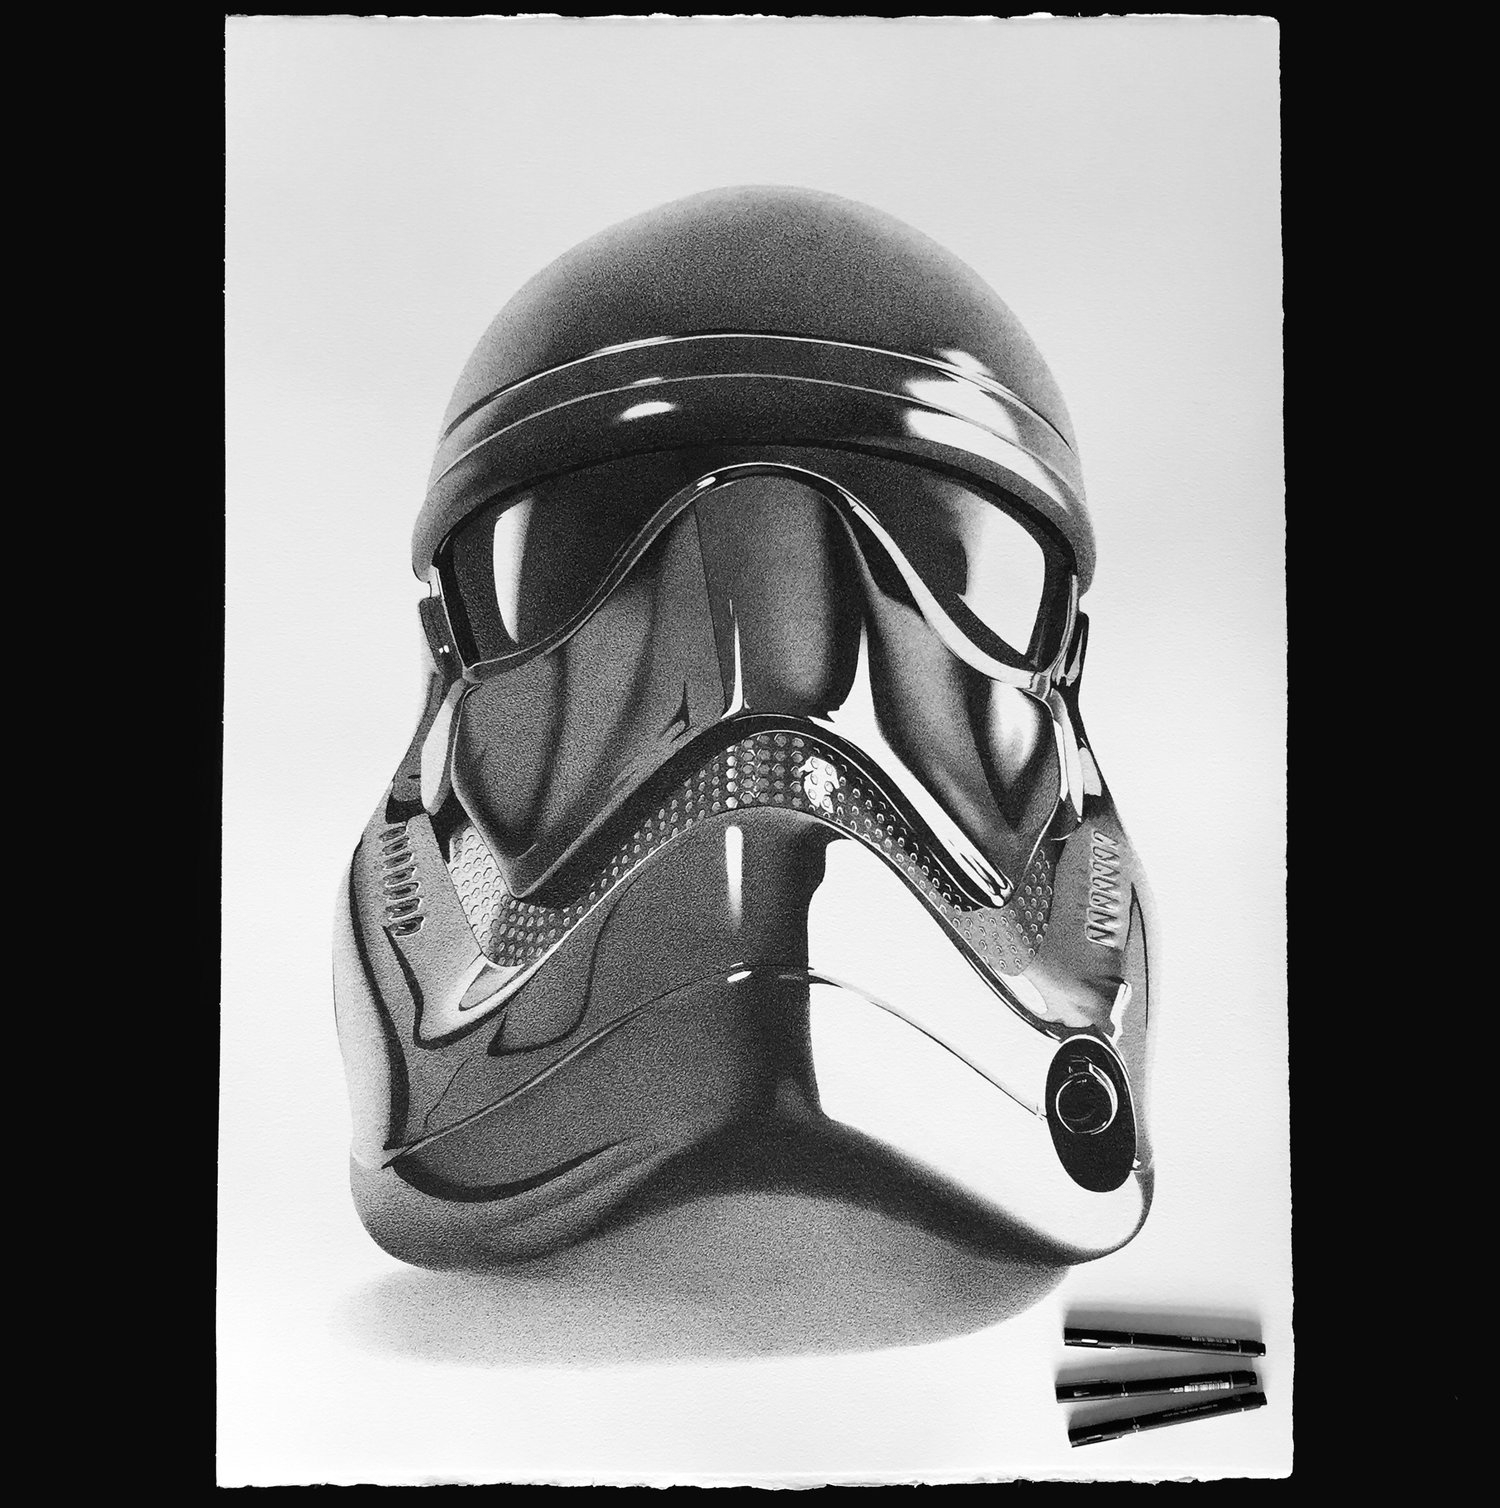 03-Shadow-Trooper-Alessandro-Paglia-Photo-Like-Black-and-White-Drawings-www-designstack-co